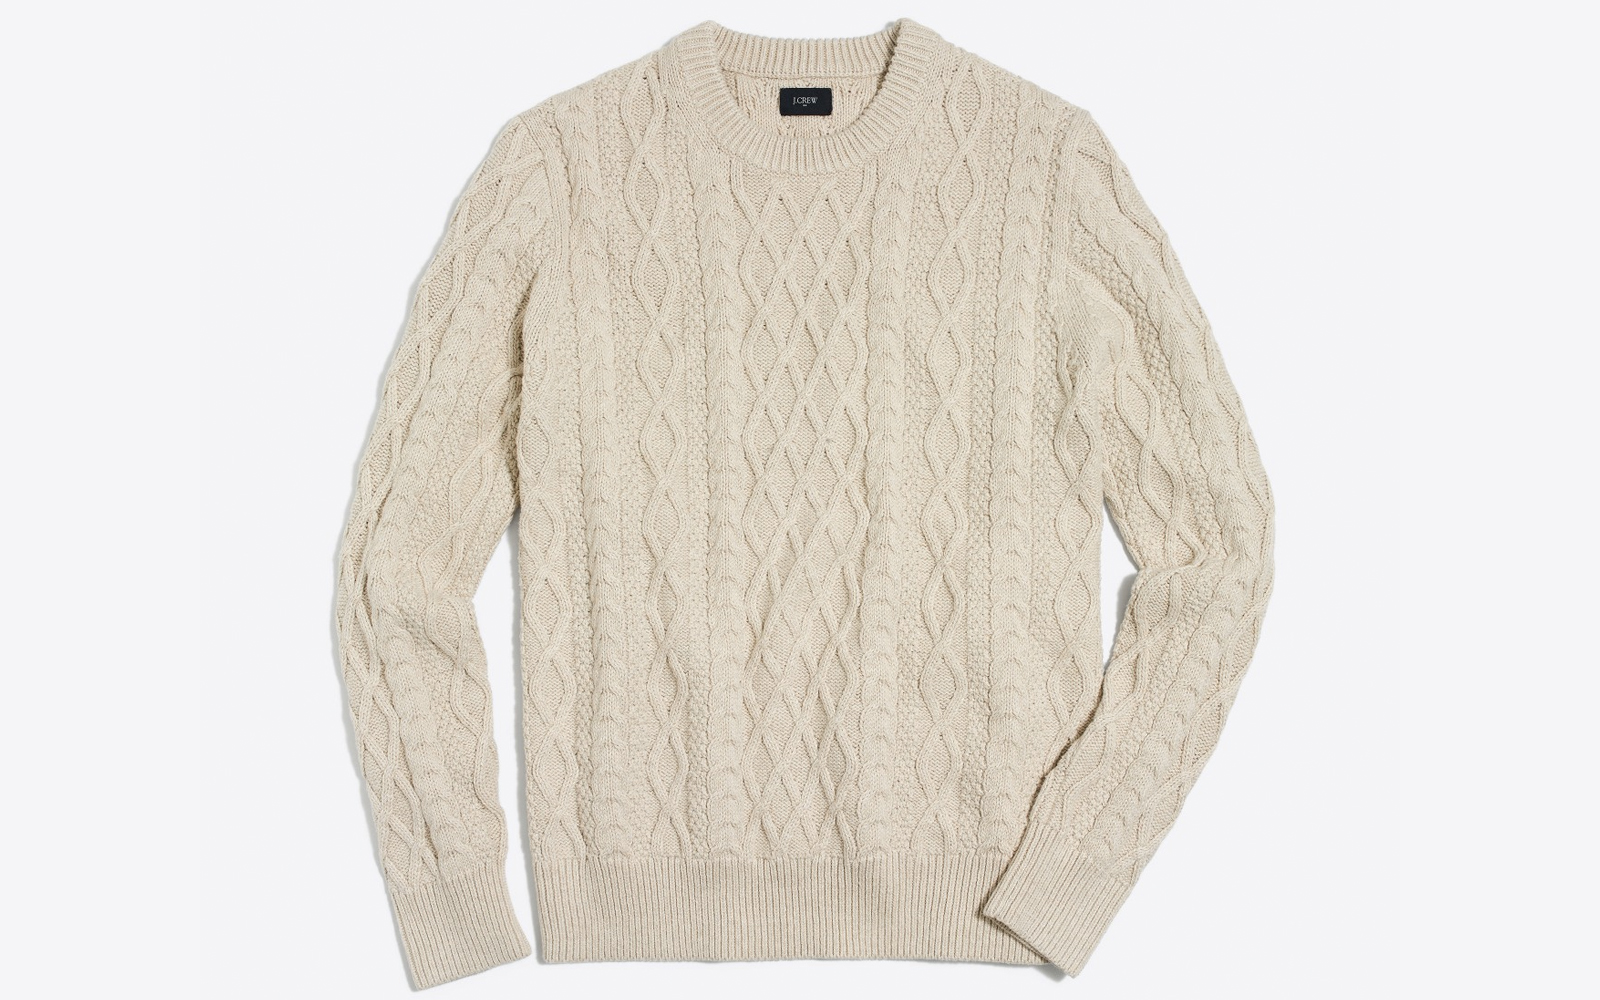 Men's Fisherman Cable Crewneck Sweater